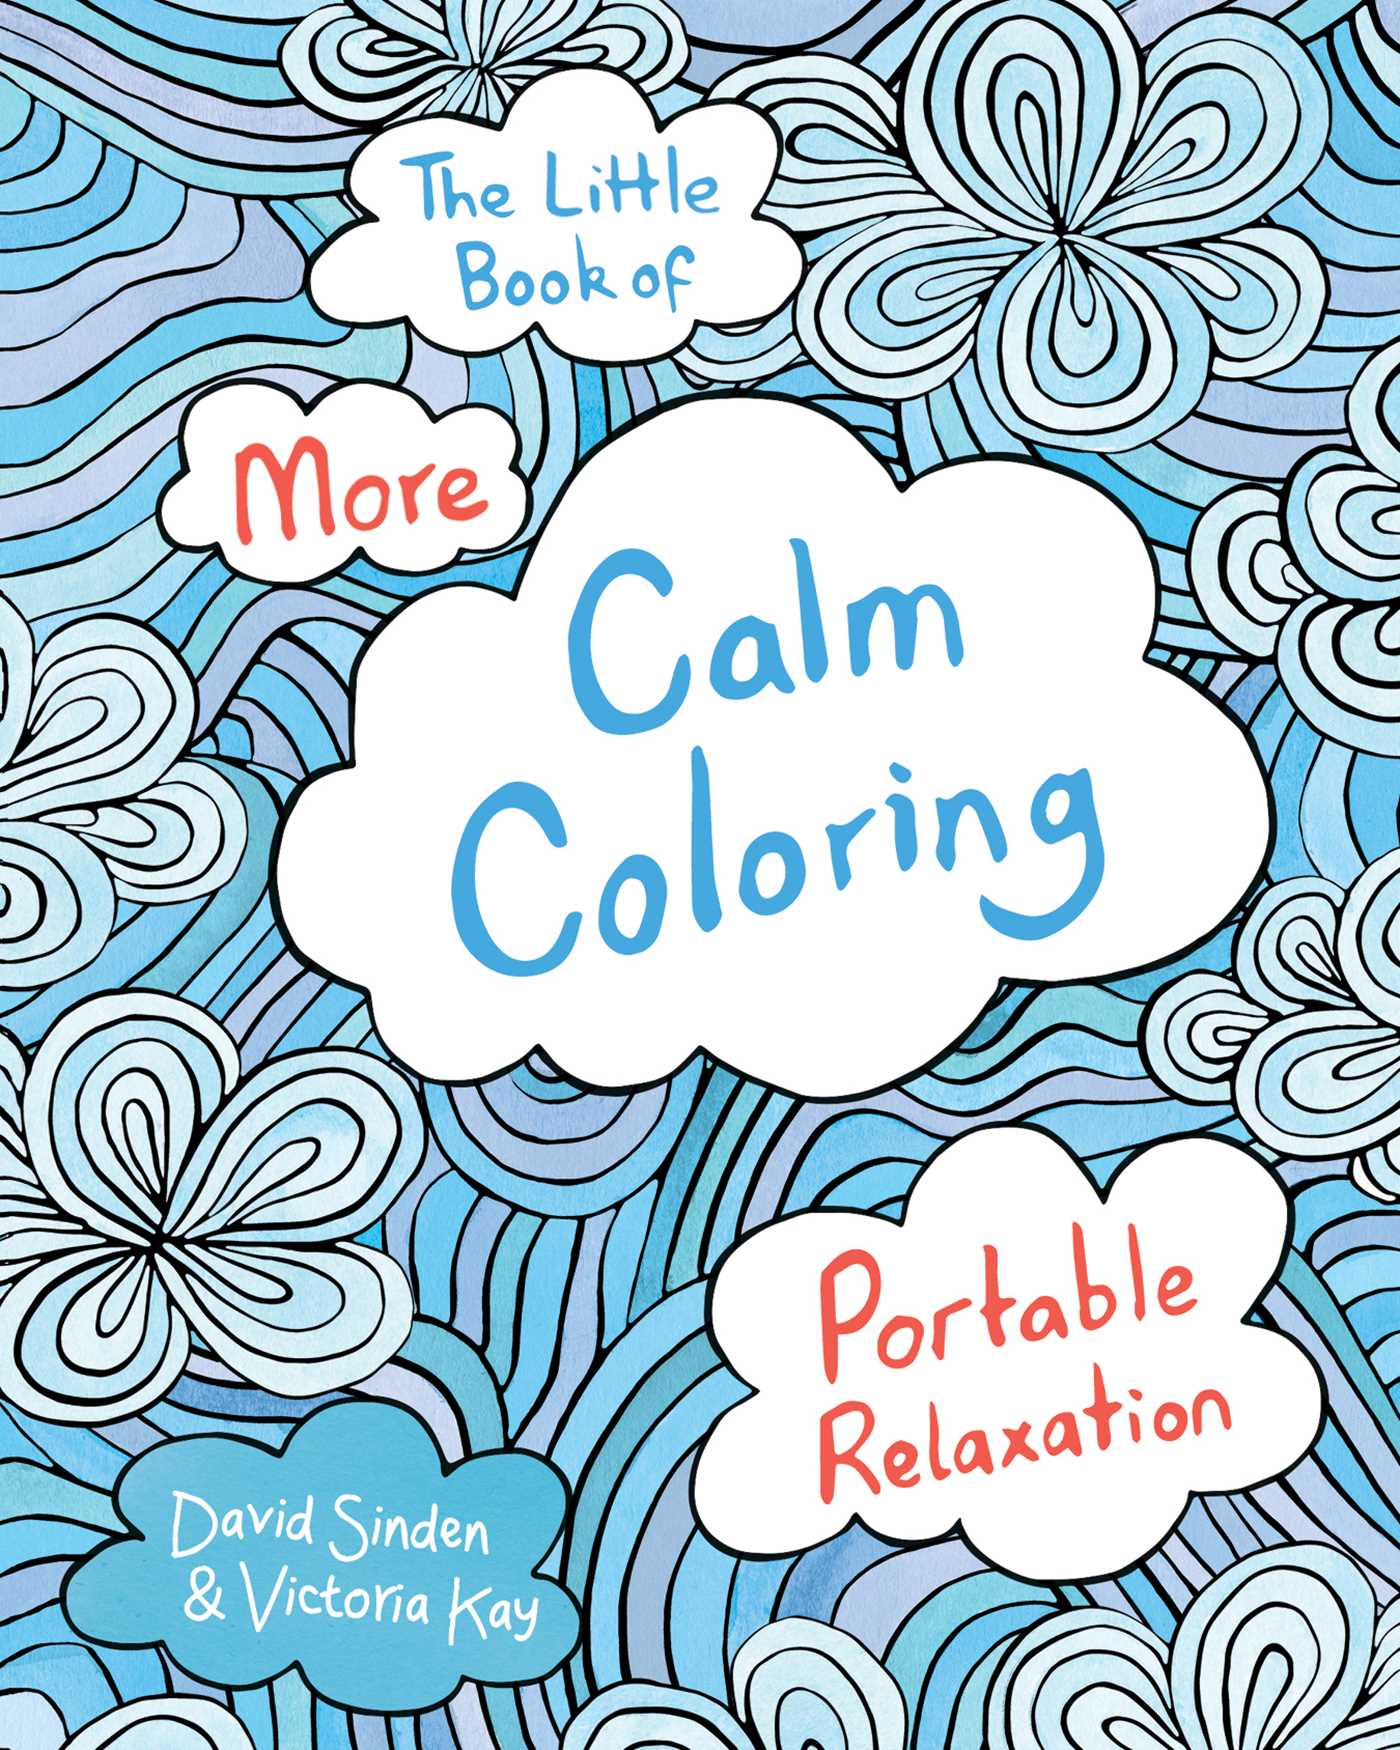 Little book of coloring for mindfulness - The Little Book Of More Calm Coloring